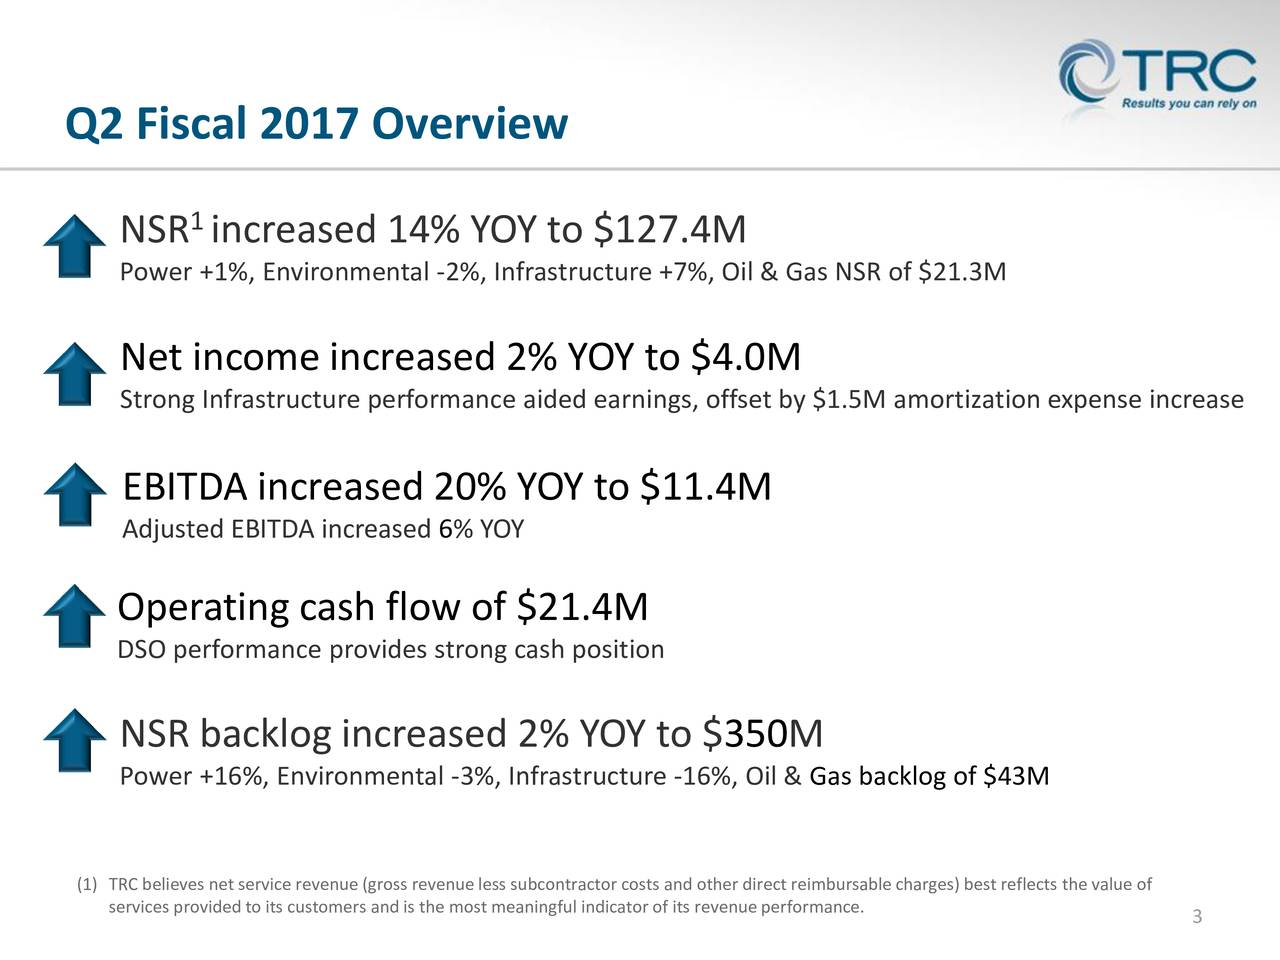 1 NSR increased 14% YOY to $127.4M Power +1%, Environmental -2%, Infrastructure +7%, Oil & Gas NSR of $21.3M Net income increased 2% YOY to $4.0M Strong Infrastructure performance aided earnings, offset by $1.5M amortization expense increase EBITDA increased 20% YOY to $11.4M Adjusted EBITDA increased 6% YOY Operating cash flow of $21.4M DSO performance provides strong cash position NSR backlog increased 2% YOY to $350M Power +16%, Environmental -3%, Infrastructure -16%, Oil & Gas backlog of $43M (1) TRC believes net service revenue (gross revenue less subcontractor costs and other direct reimbursable charges) best reflects the value of services provided to its customers and is the most meaningful indicator of its3revenue performance.